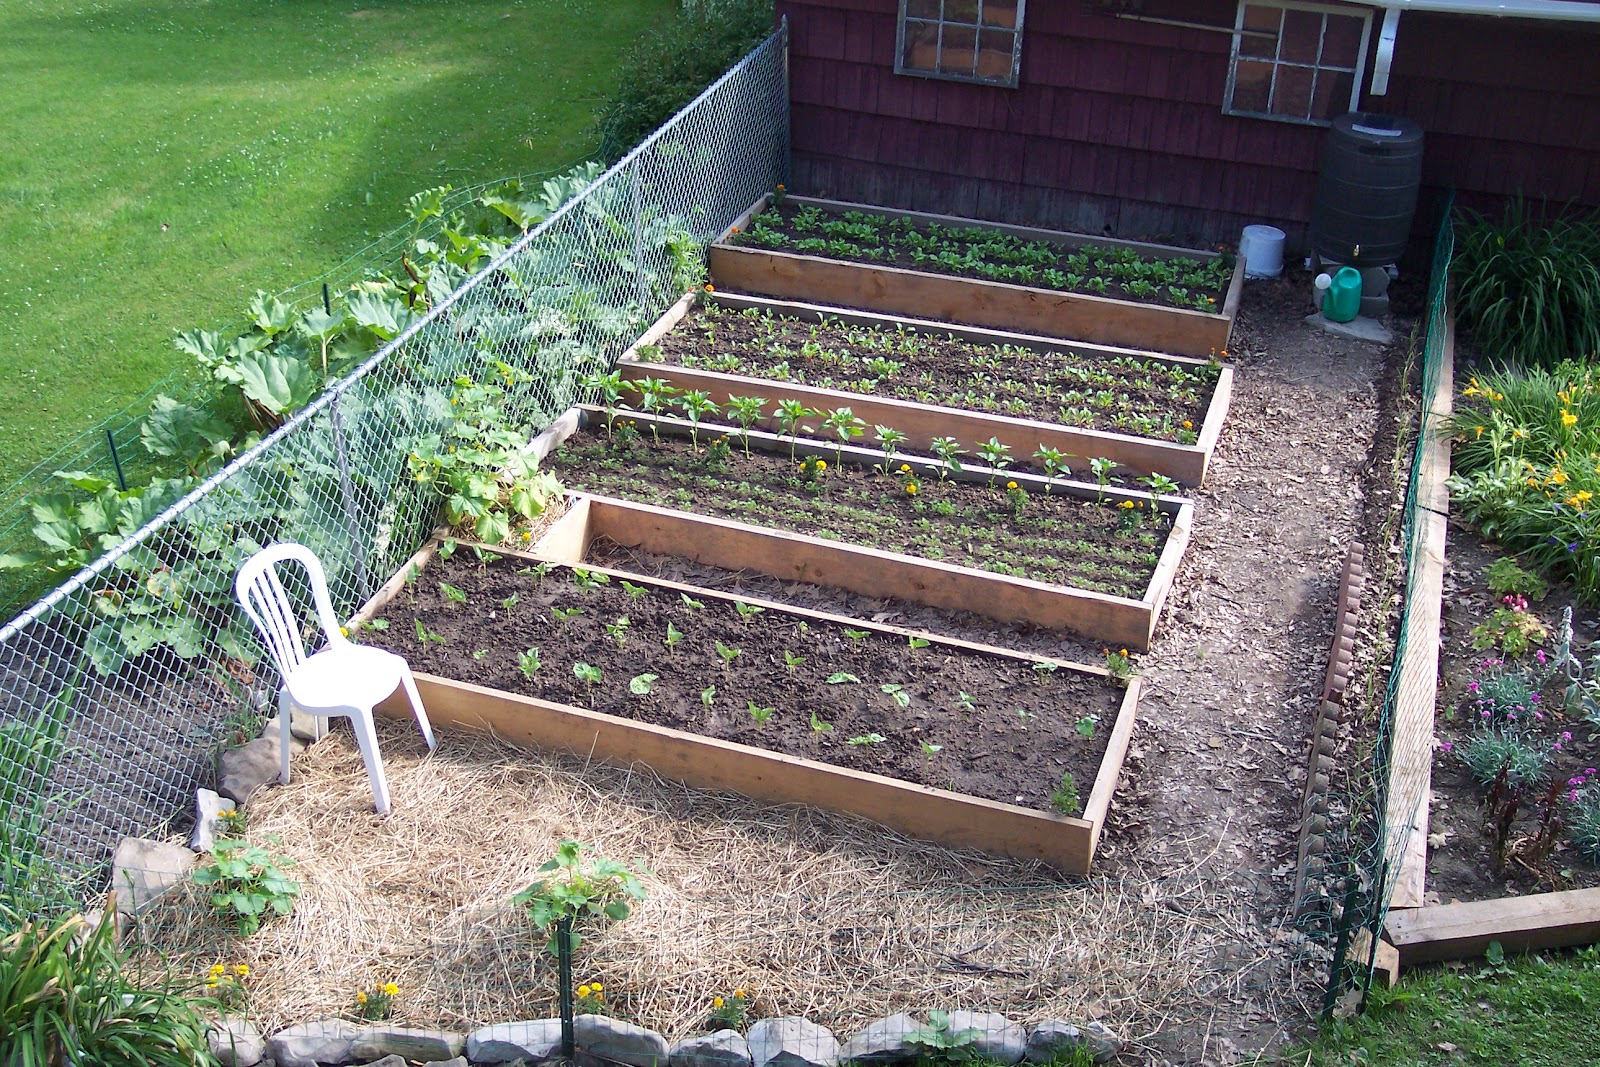 My Special Homestead - Getting Back to Basics: The Results ...